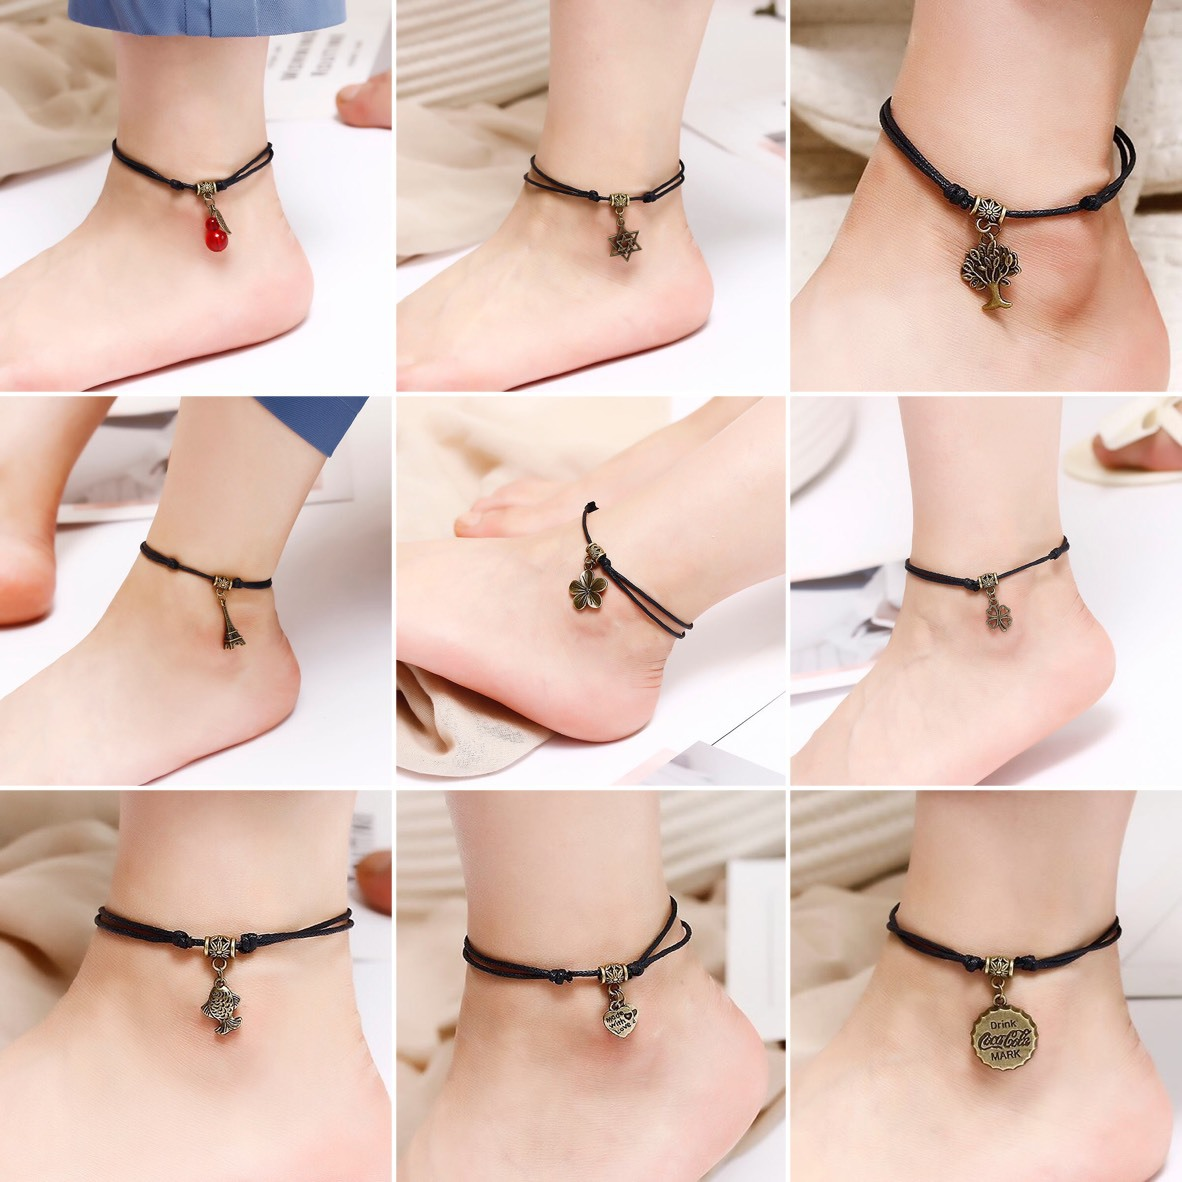 Bohemia Leaves Heart Sun Insect Pendant Ankle for Women Black Rope Bracelets on Leg Choker Ankles Sandal China Jewelry Gift image